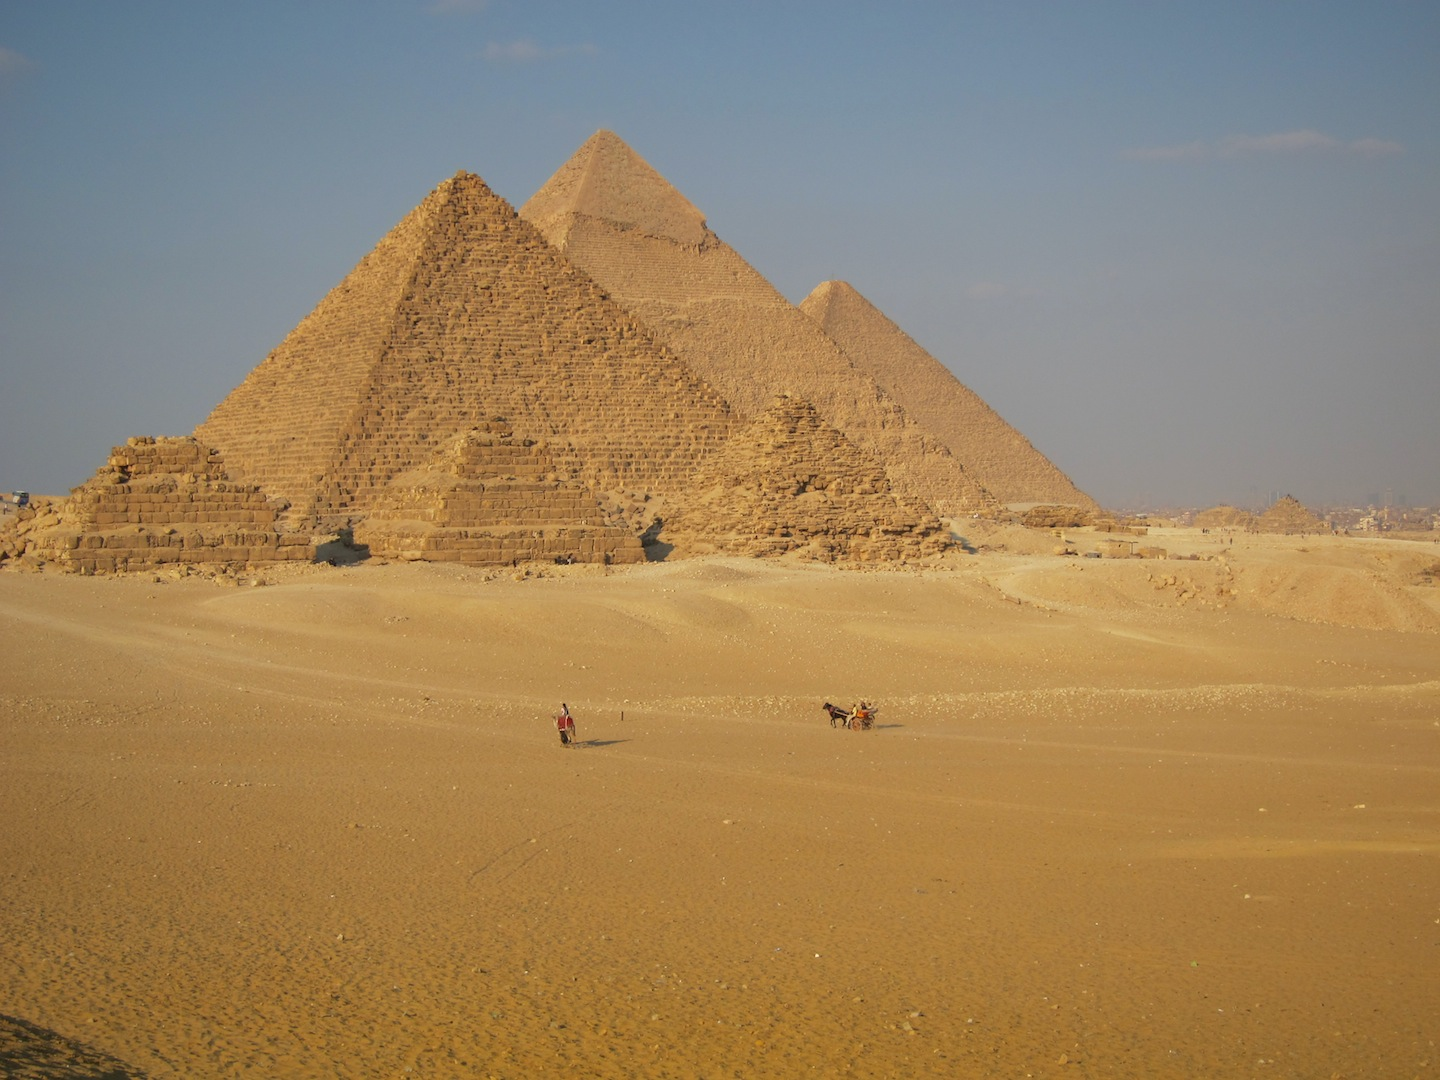 an introduction to the construction of the pyramids in ancient egypt In ancient egypt, pyramids were built during the time of the old kingdom  pyramids were tombs, royal tombs, where the ancient egyptians buried their  kings.